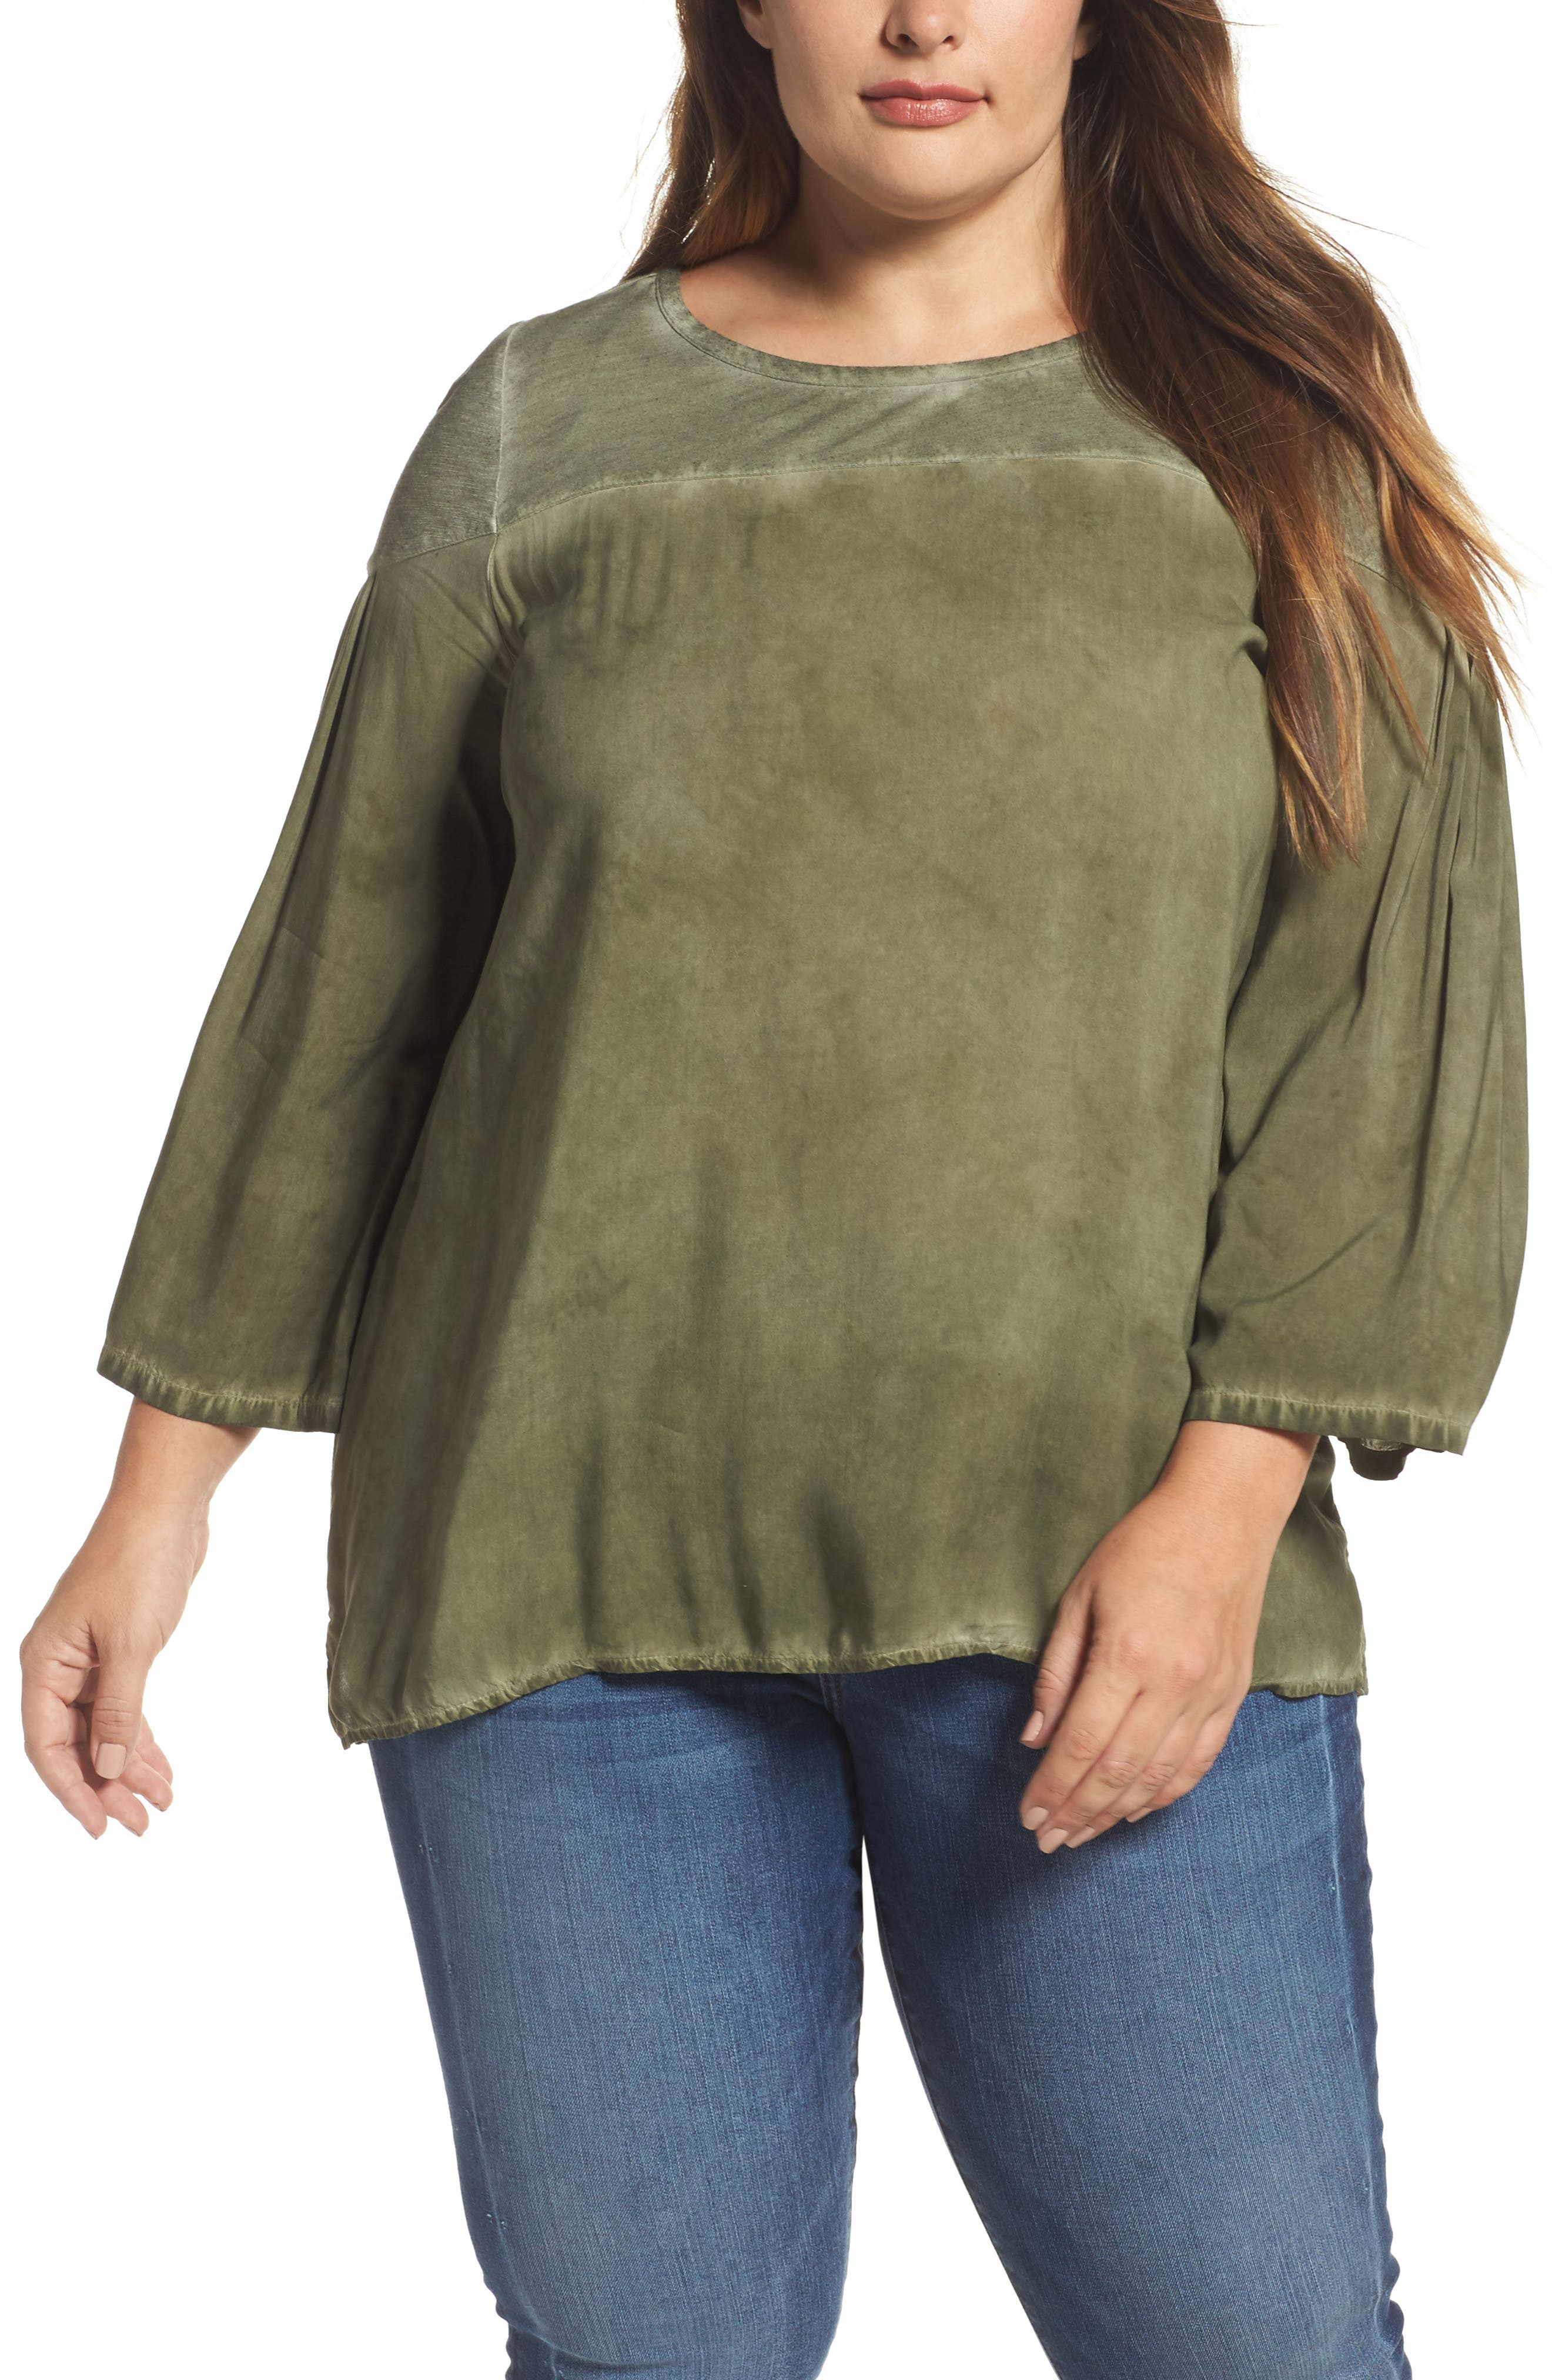 Main Image - Two by Vince Camuto Slubbed Garment Dyed Top